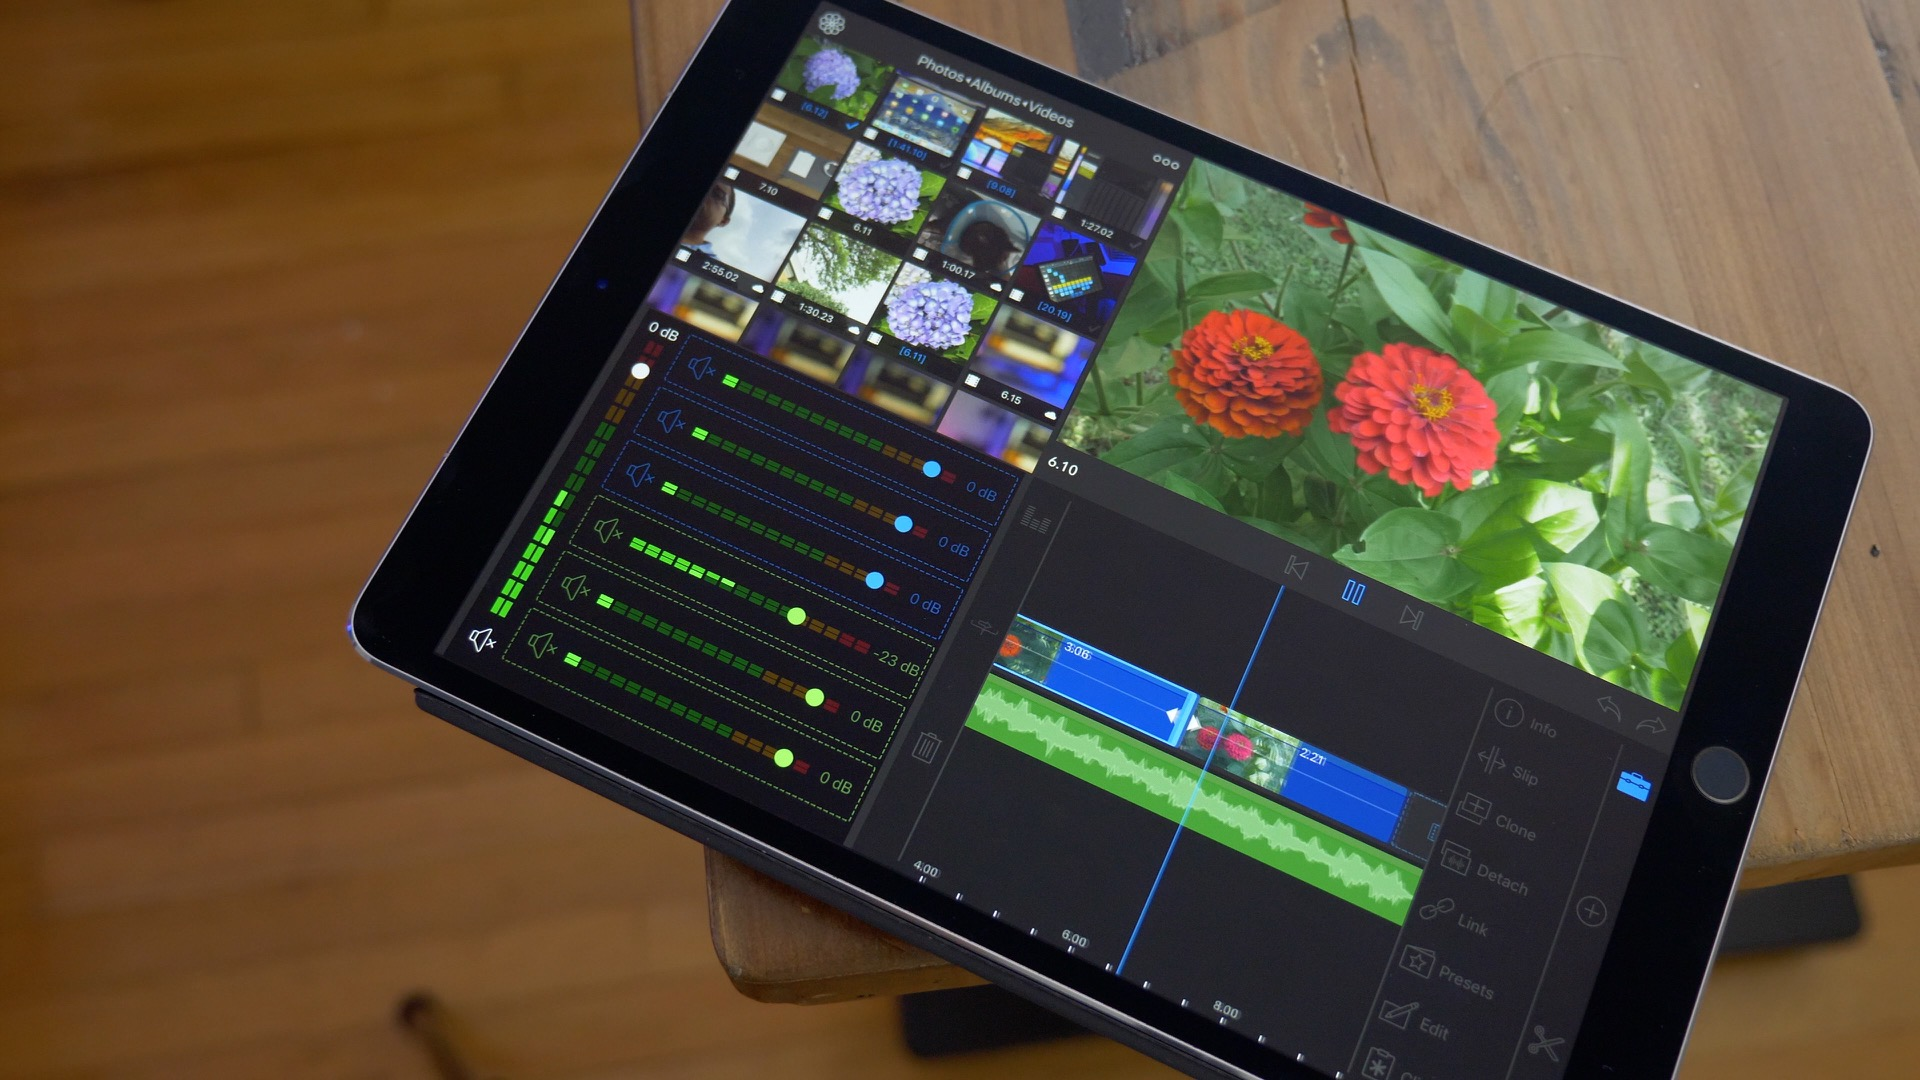 Best free iPad apps 2019: the top titles we've tried